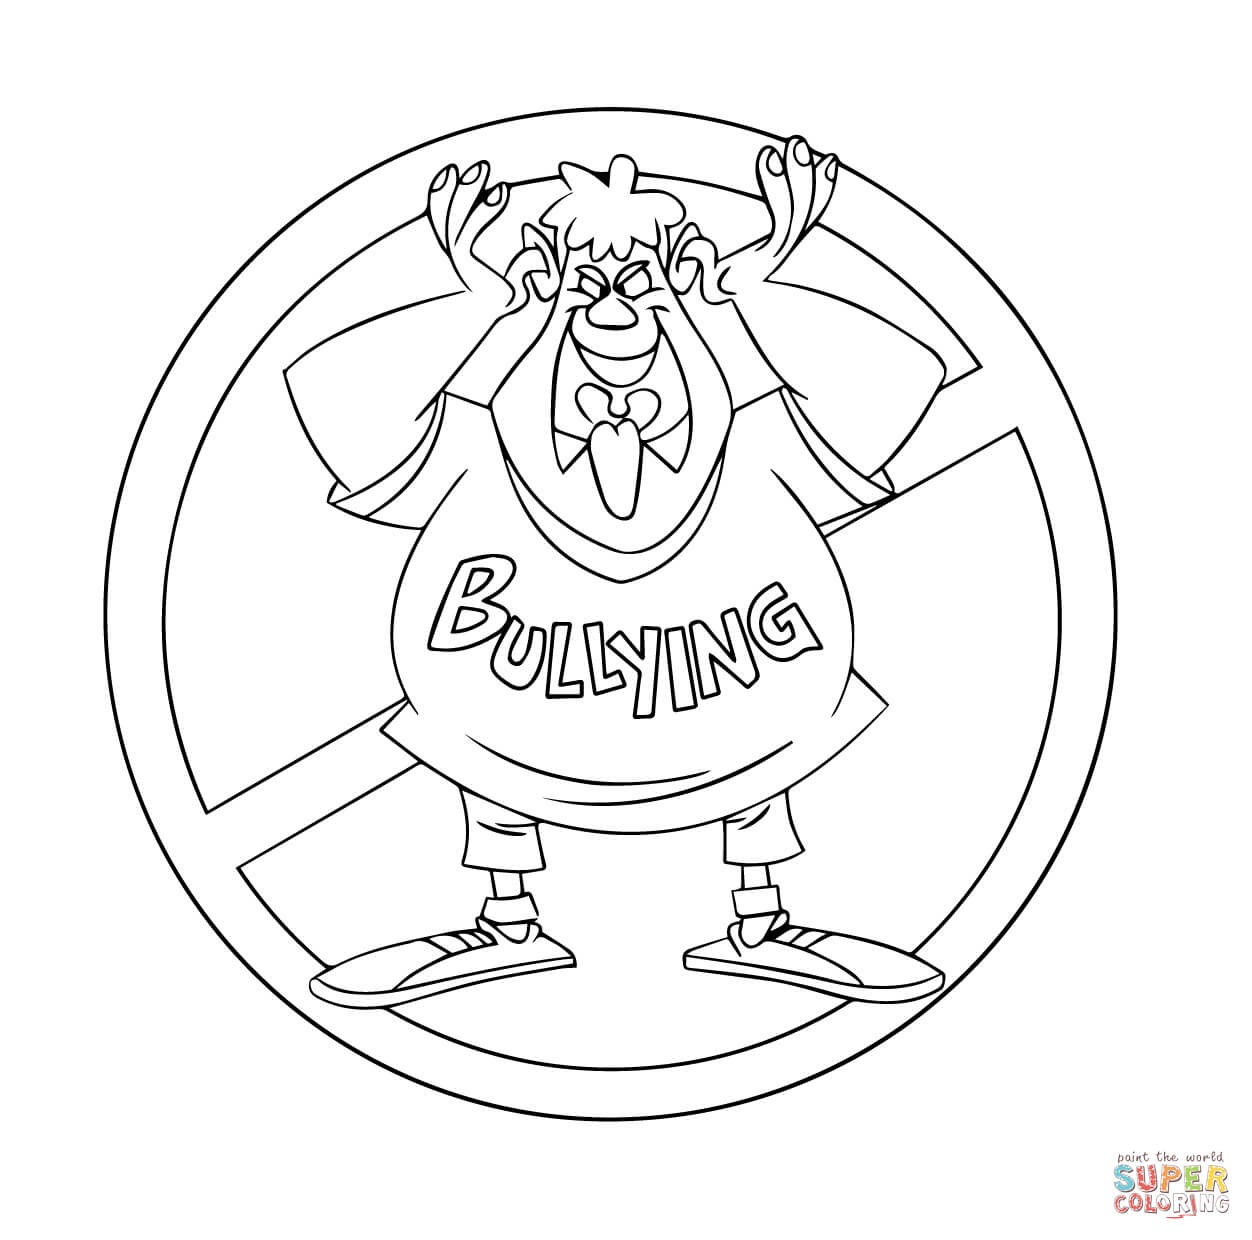 No to Bullying Troll coloring page | Free Printable Coloring Pages